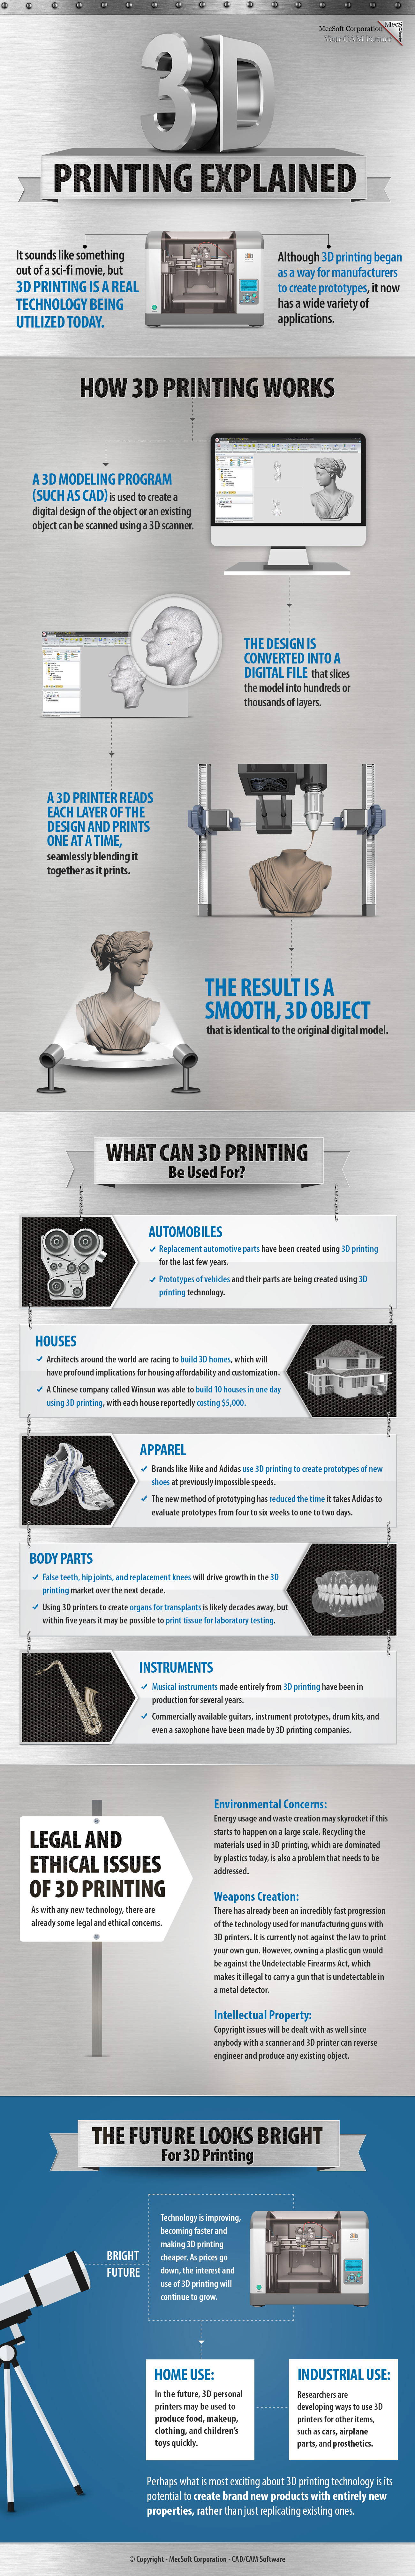 3D Printing Explained